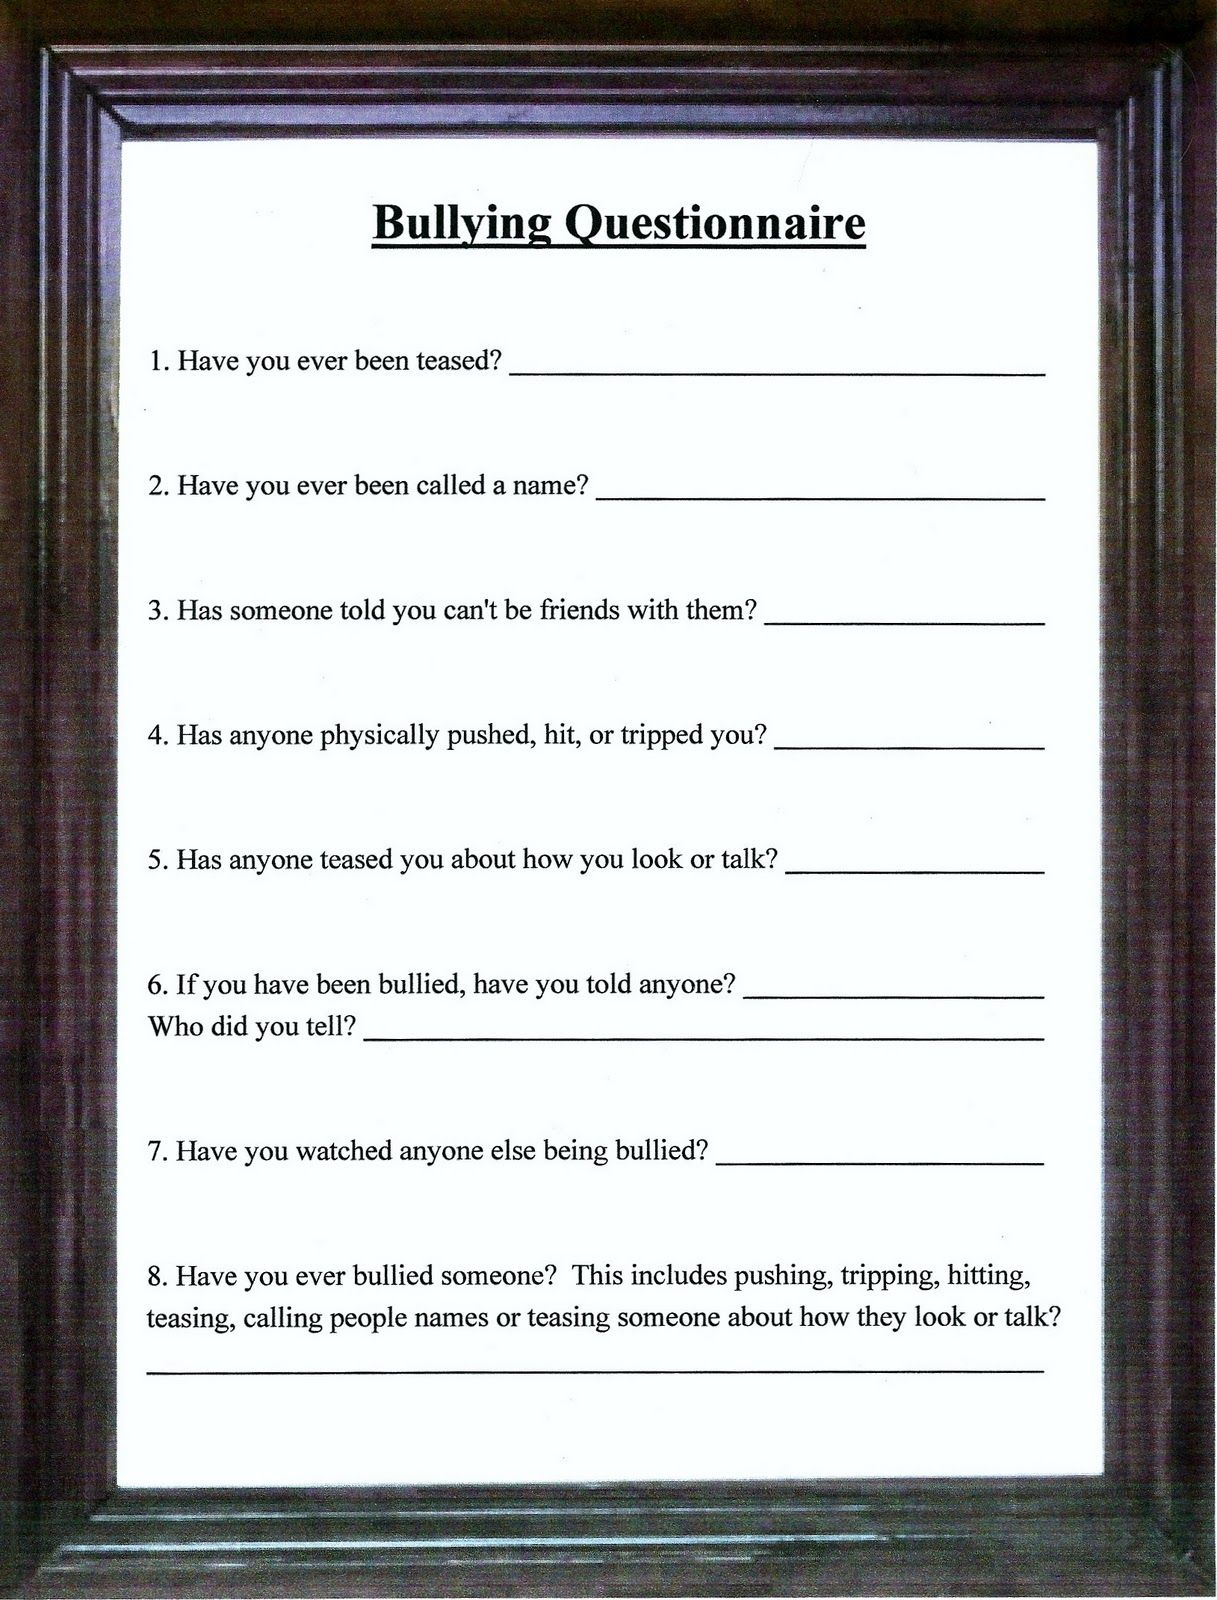 Lorinda Character Education Bullying Questionnaire Amp My Name Is Bully 8